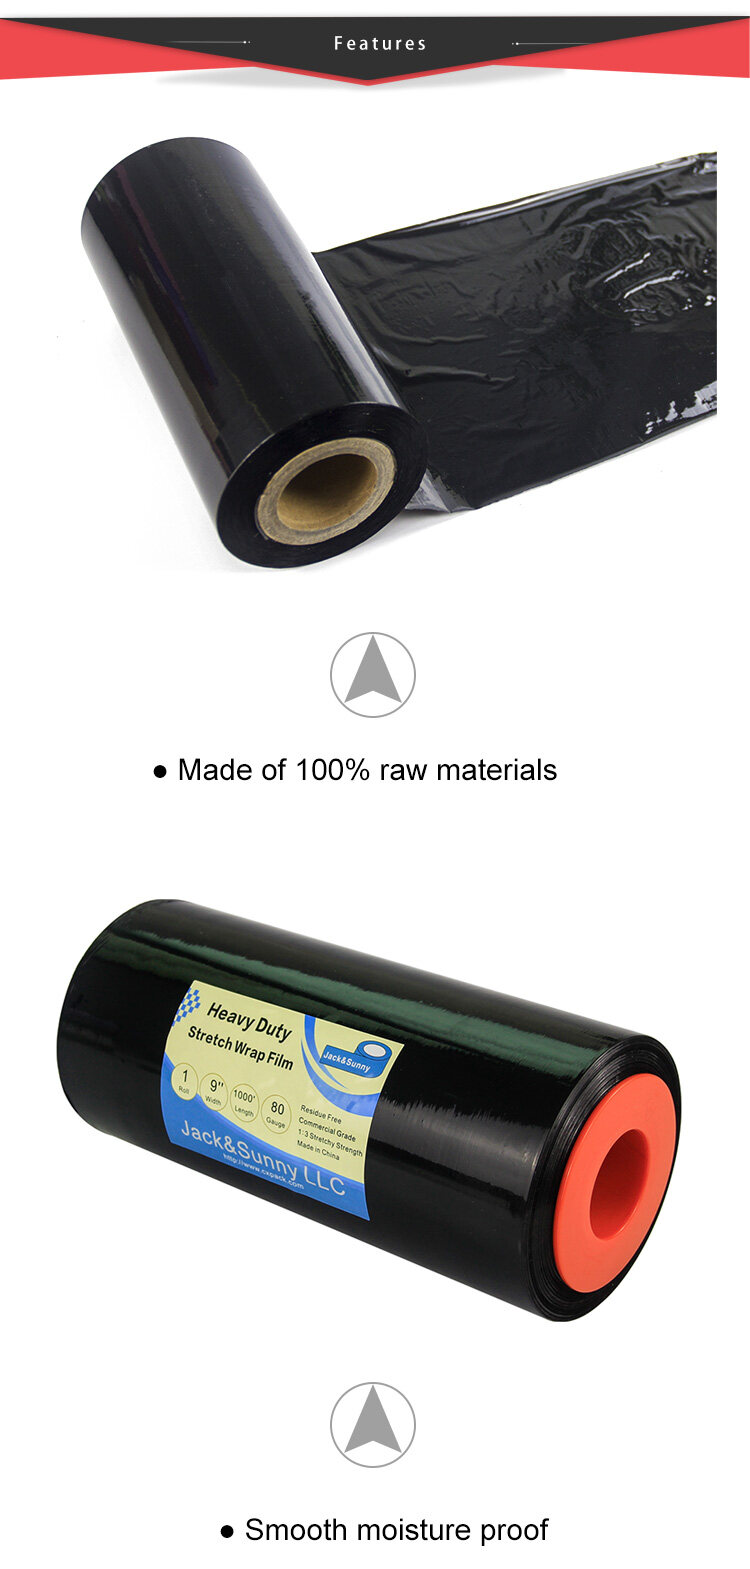 Heavy Duty Hand Plastic Stretch Wrap